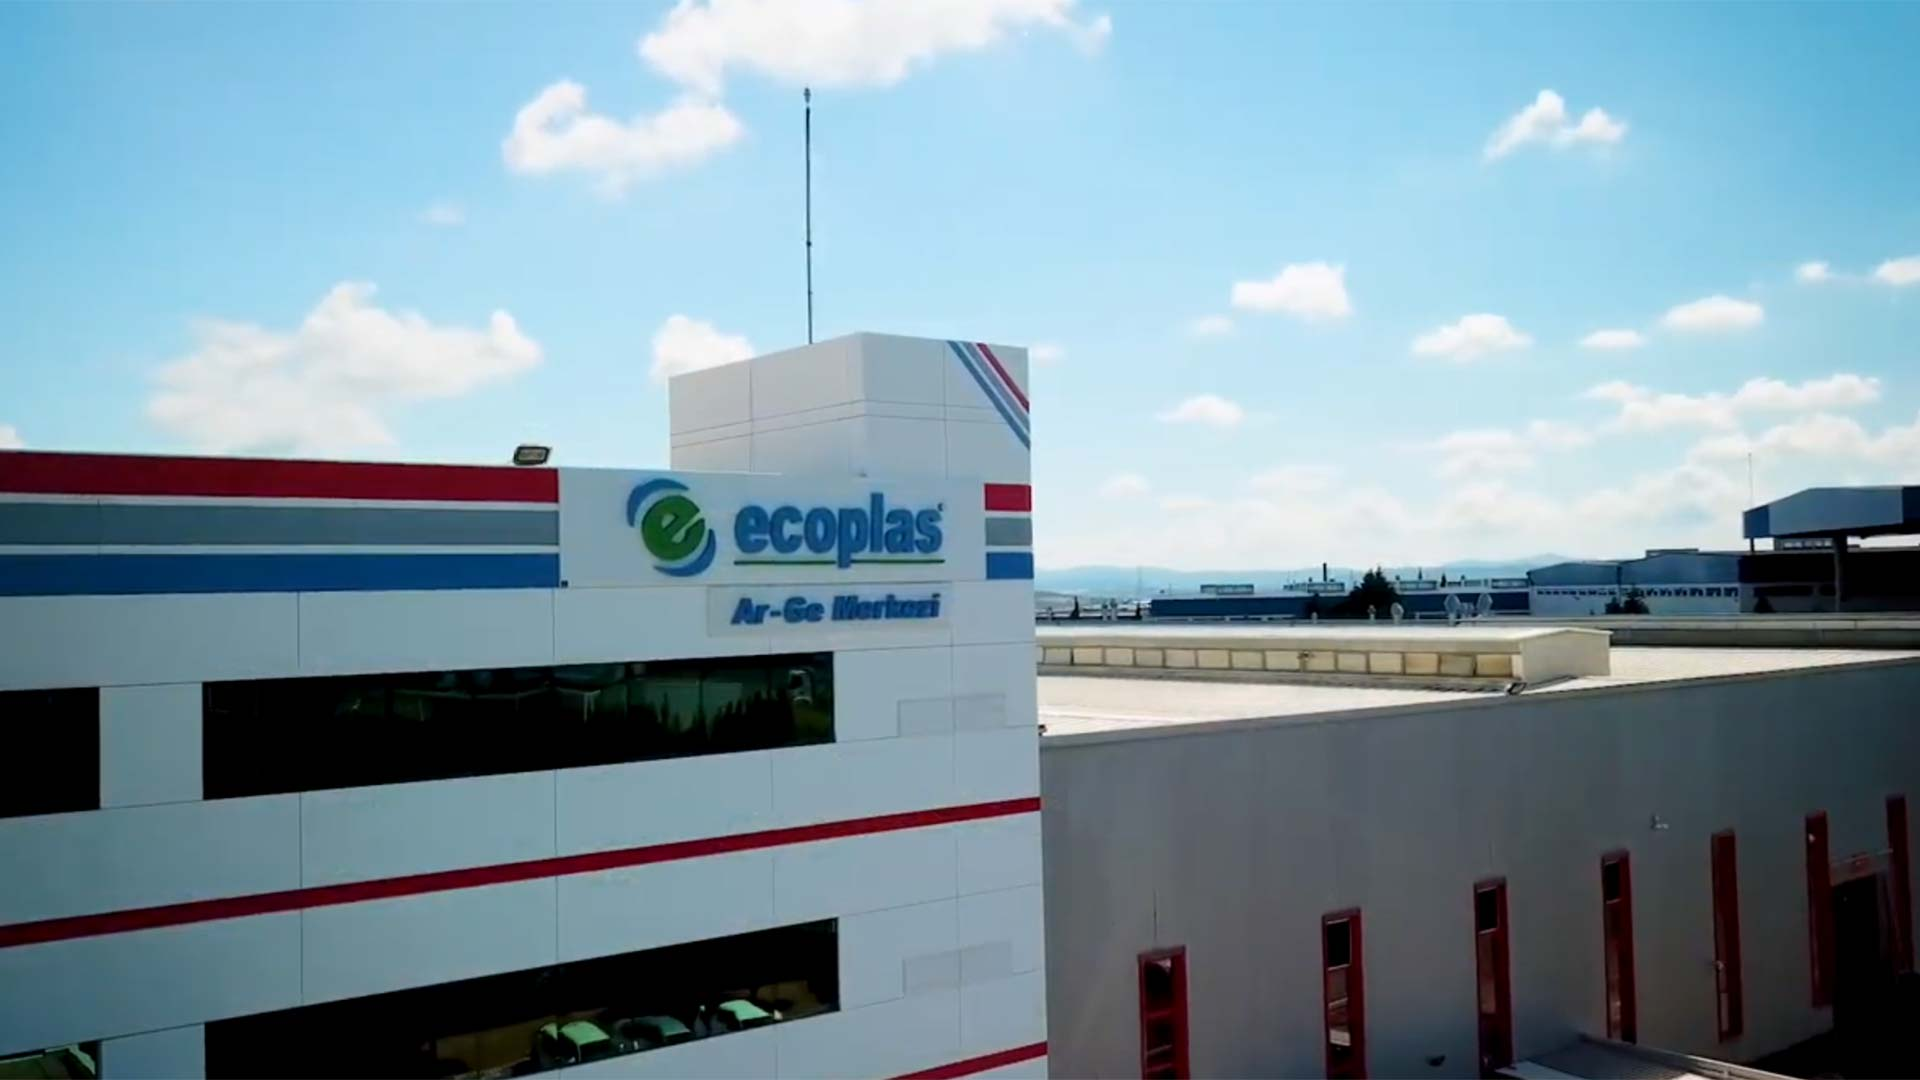 Ecoplas Automotive